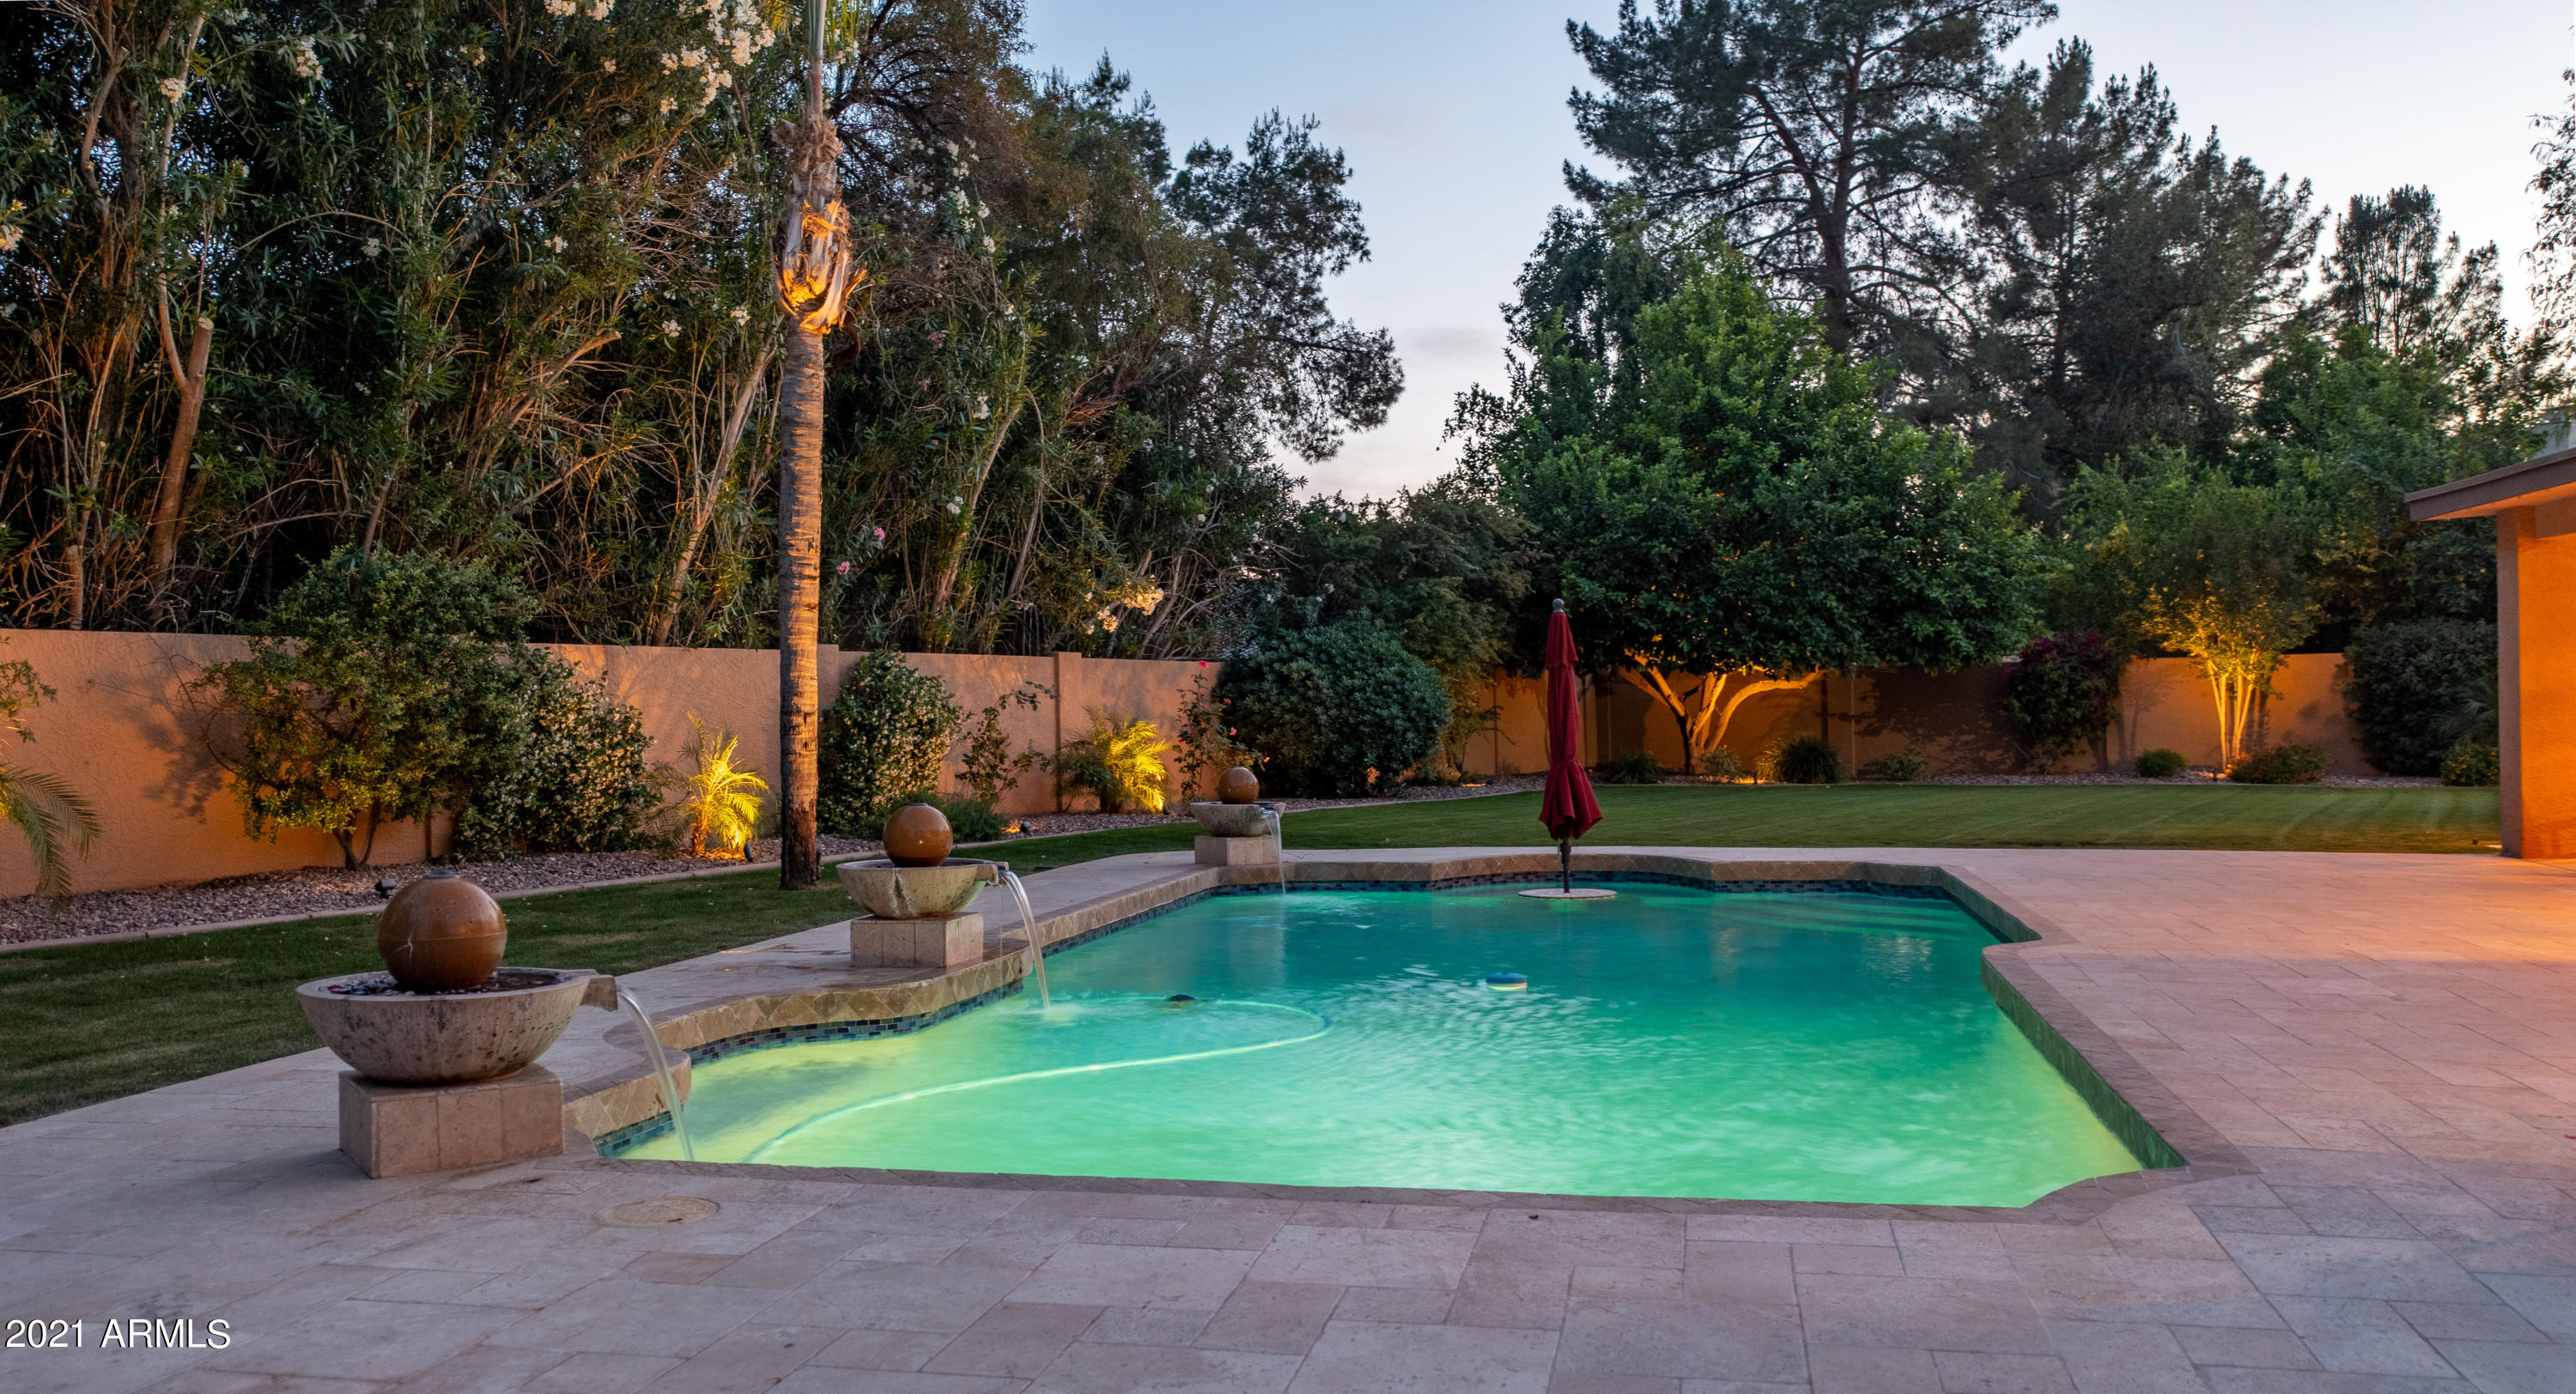 9725 MISSION Lane, Scottsdale, Arizona 85258, 4 Bedrooms Bedrooms, ,2.5 BathroomsBathrooms,Residential,For Sale,MISSION,6228090